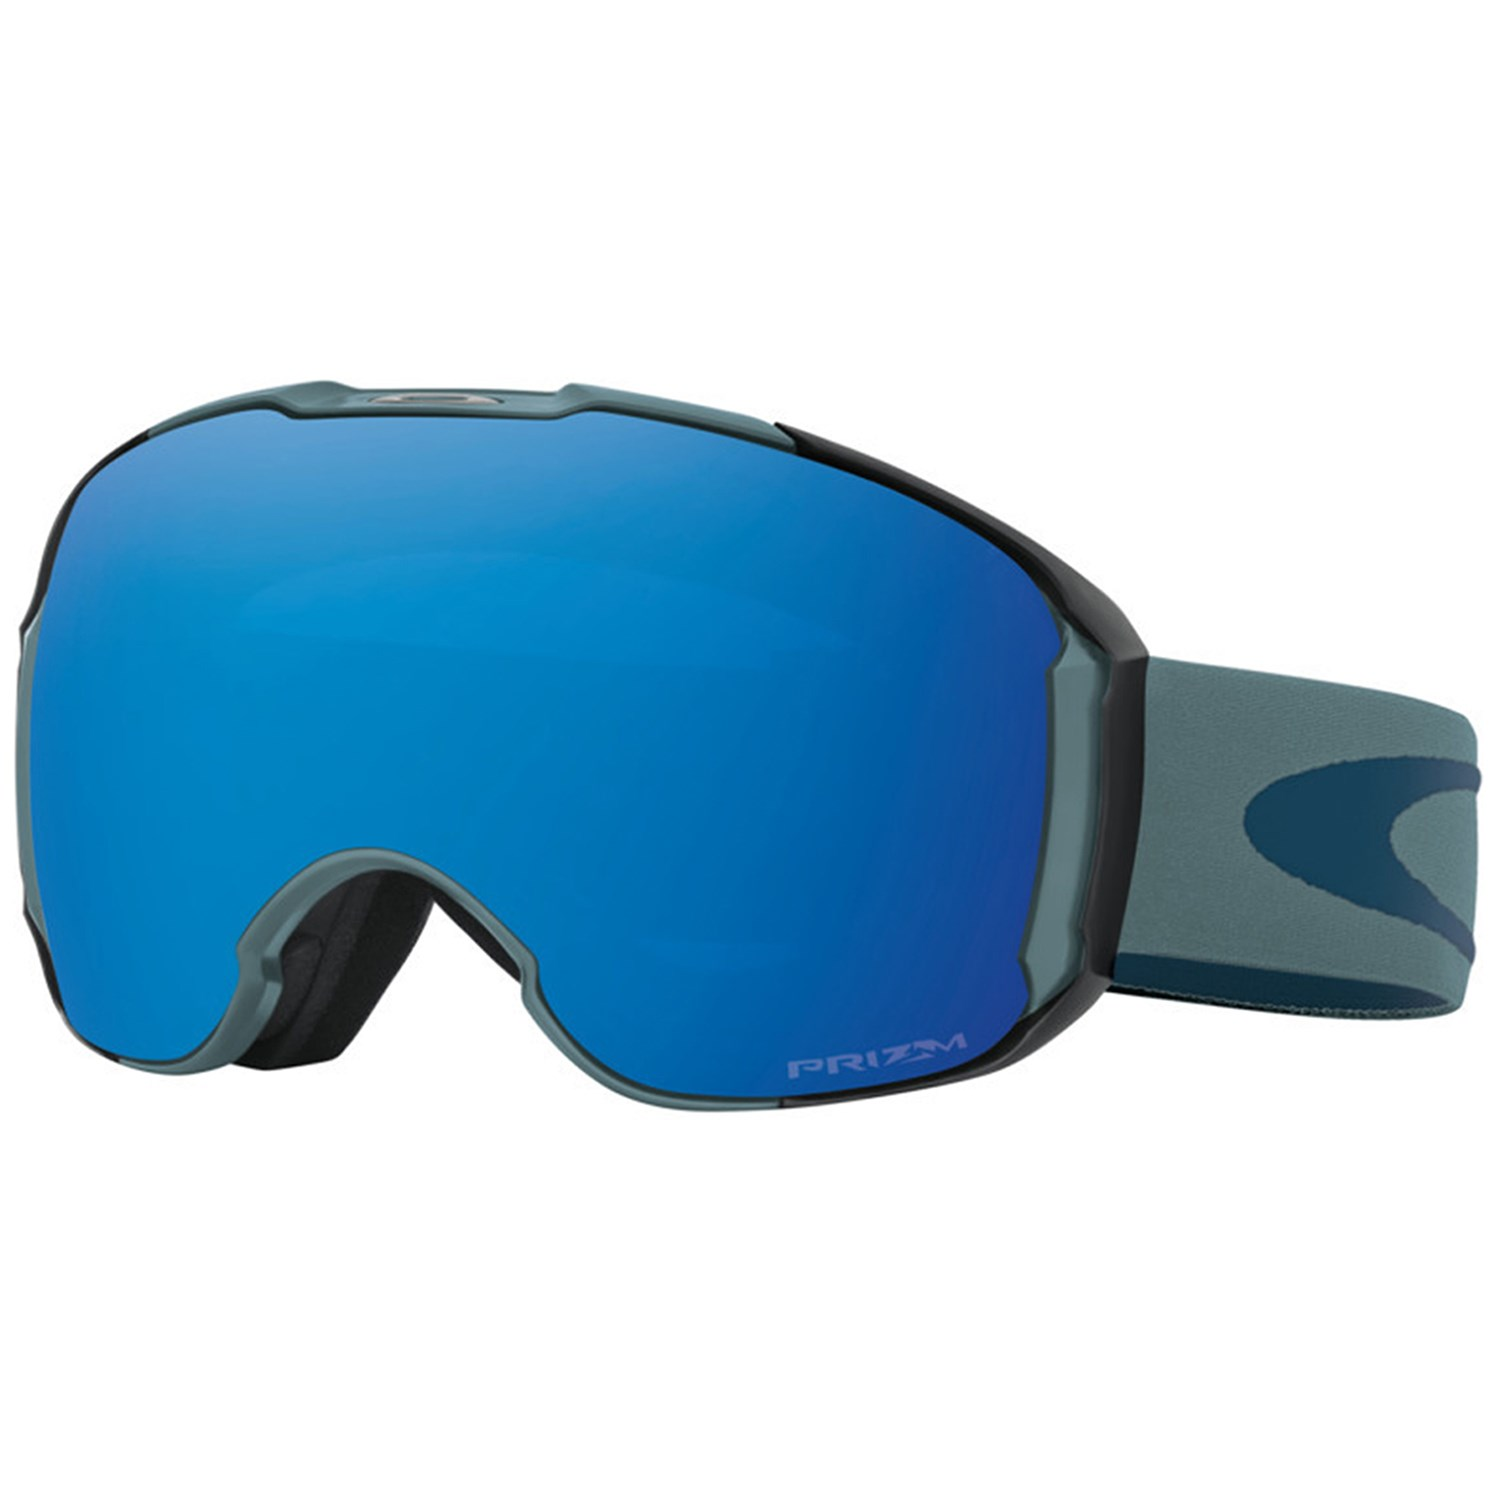 edb23a2320 Oakley Goggles With Smith Helmet « Heritage Malta